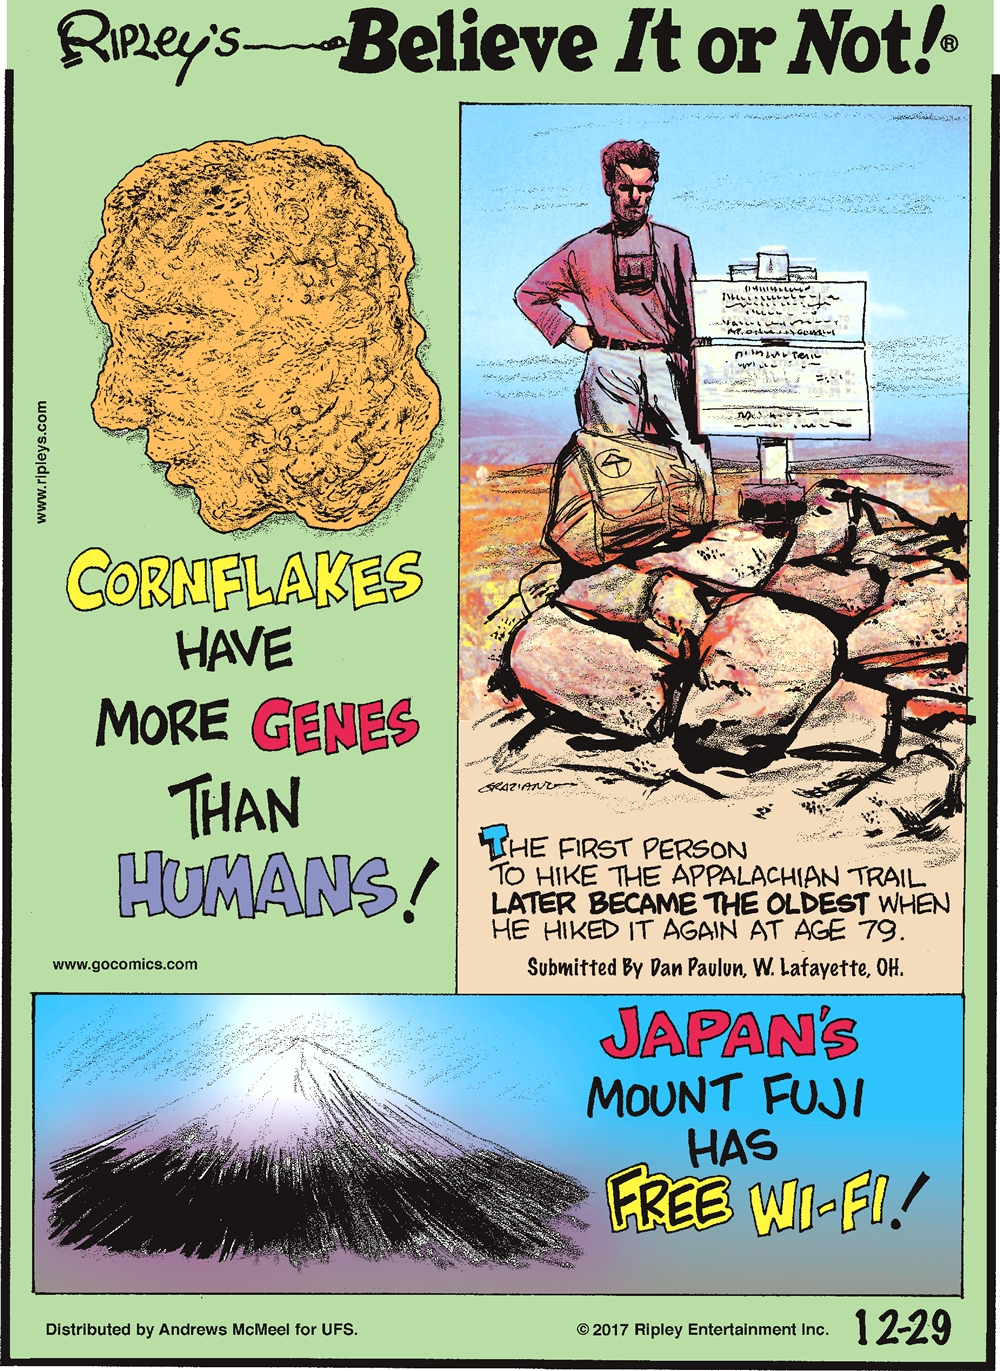 Cornflakes have more genes than humans!-------------------- The first person to hike the Appalachian trail later became the oldest when he hiked it again at age 79. Submitted by Dan Paulun, W. Lafayette, OH.-------------------- Japan's Mount Fuji has free wi-fi!